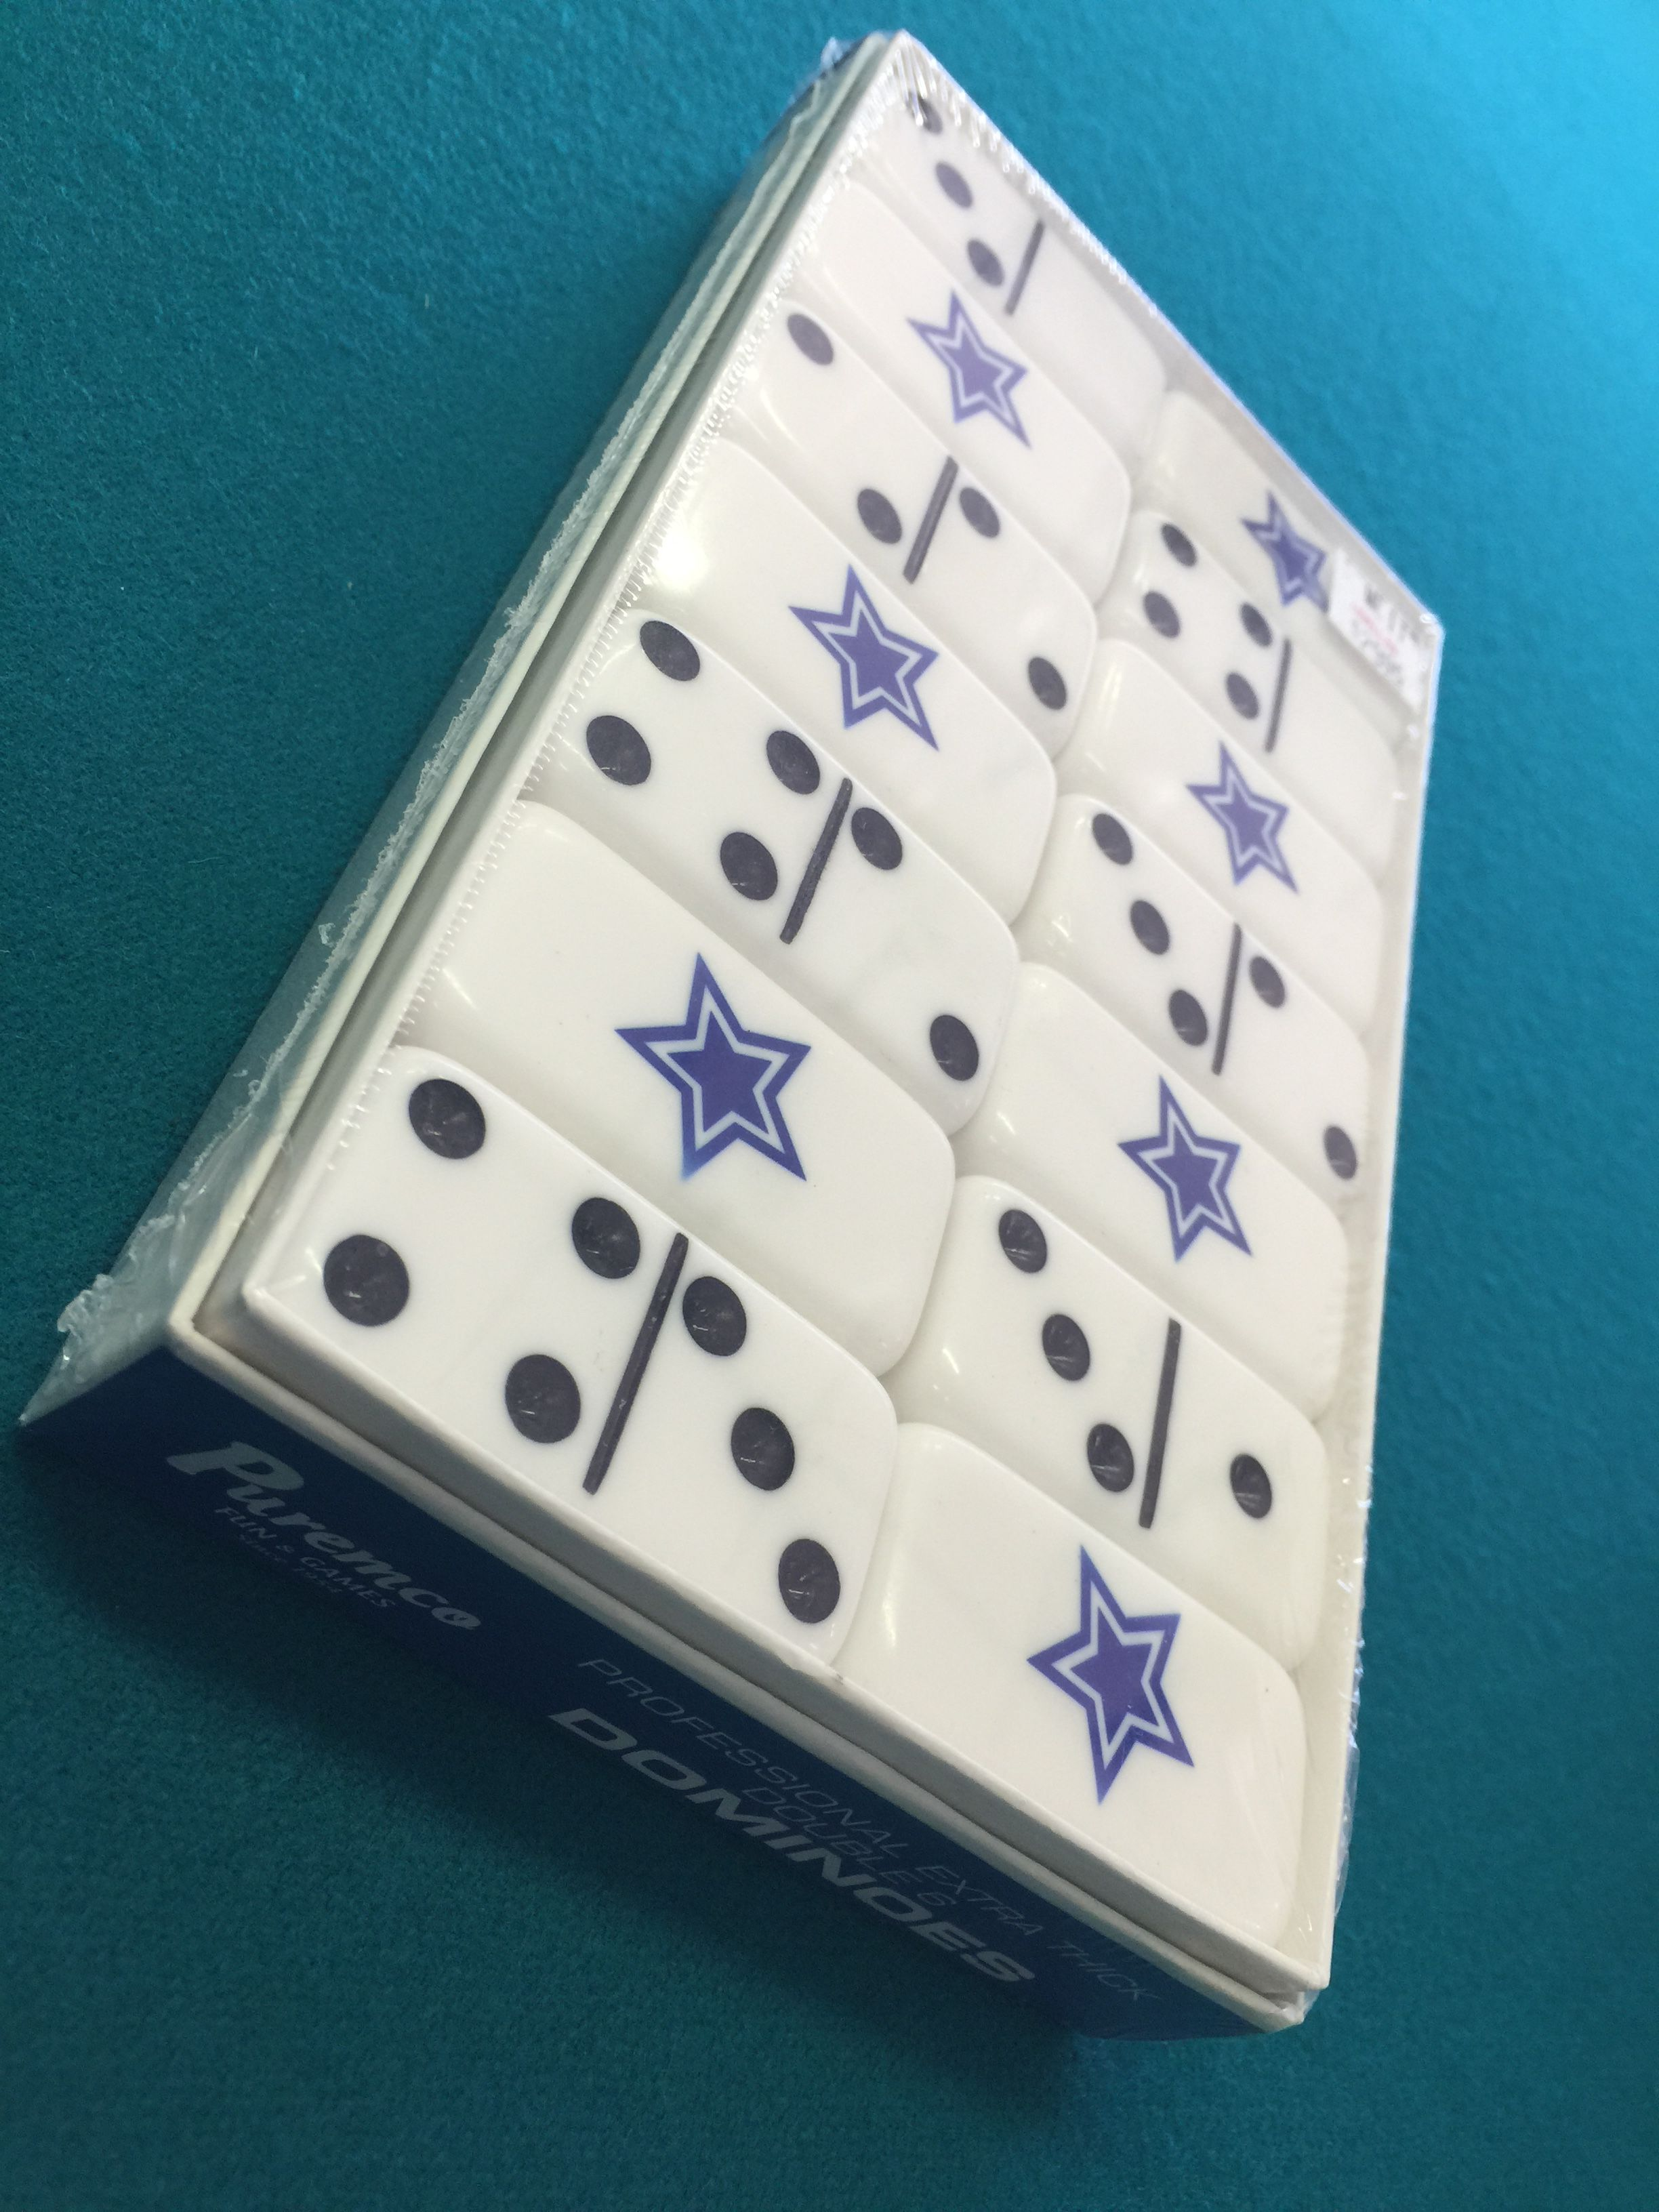 Dallas cowboy domino set great gift for anyone www